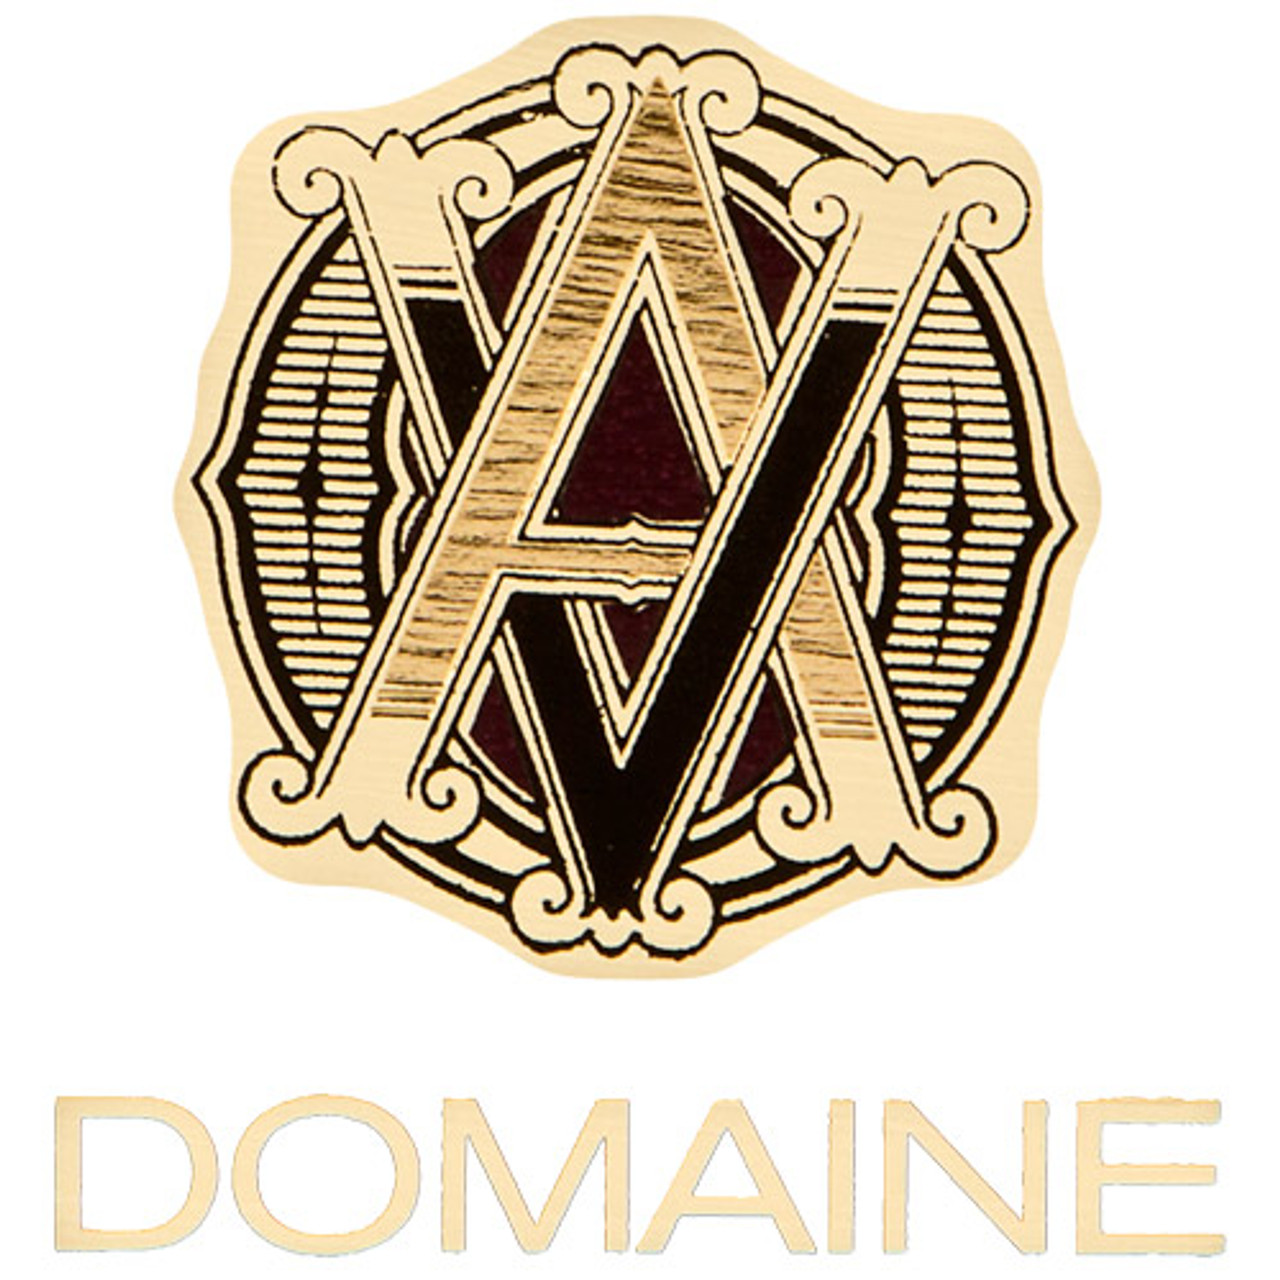 AVO Domaine No. 10 Tubo Cigars - 5 x 50 (Box of 20)